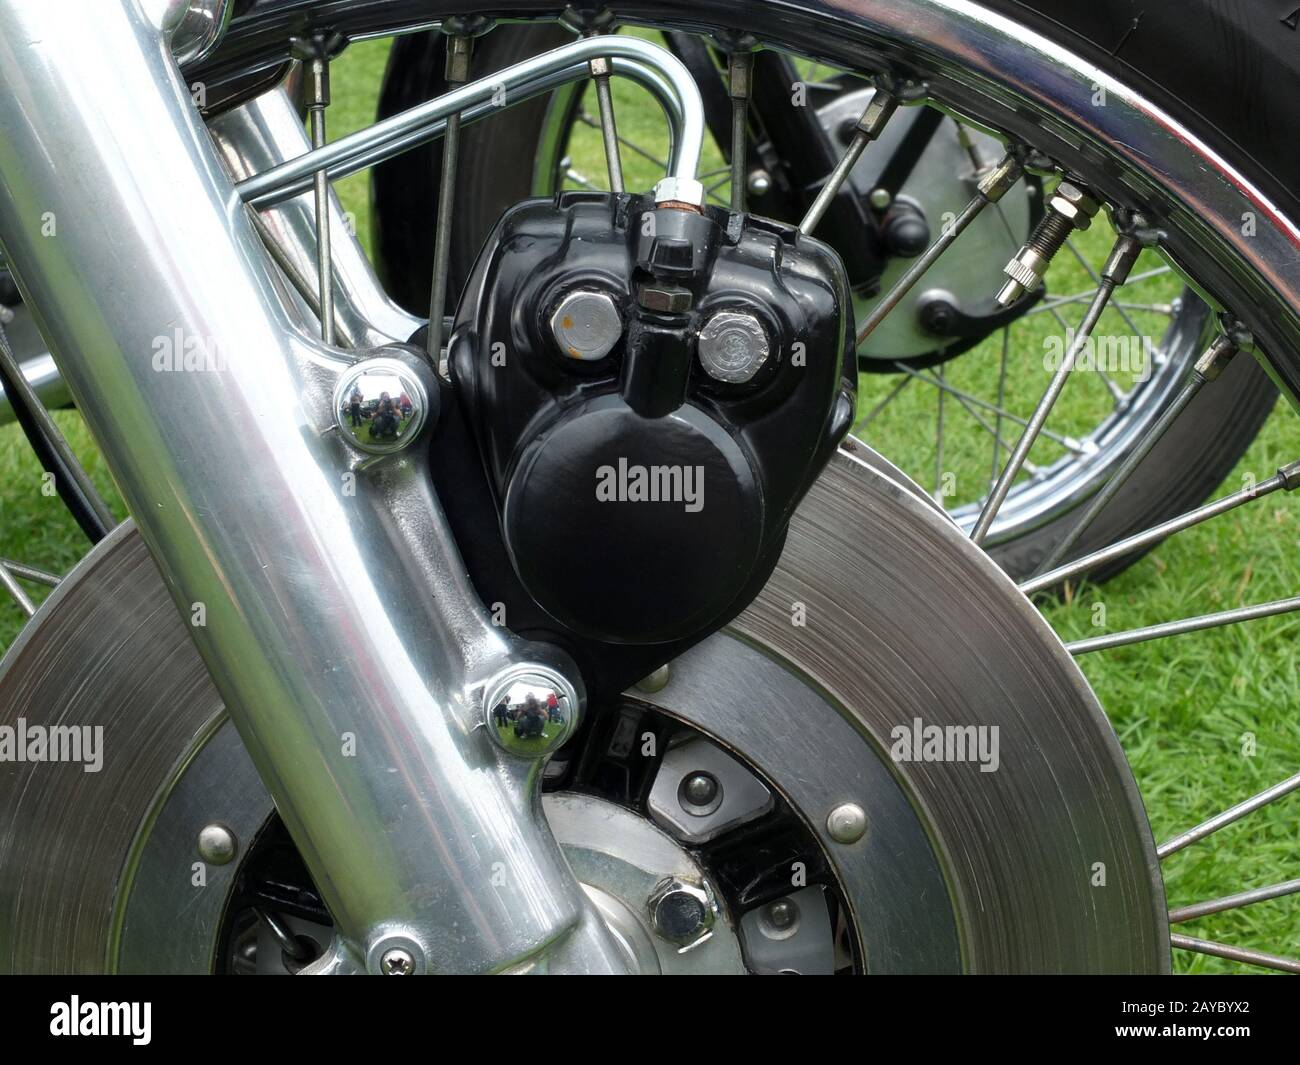 Disk Brake Motorbike Front High Resolution Stock Photography And Images Alamy